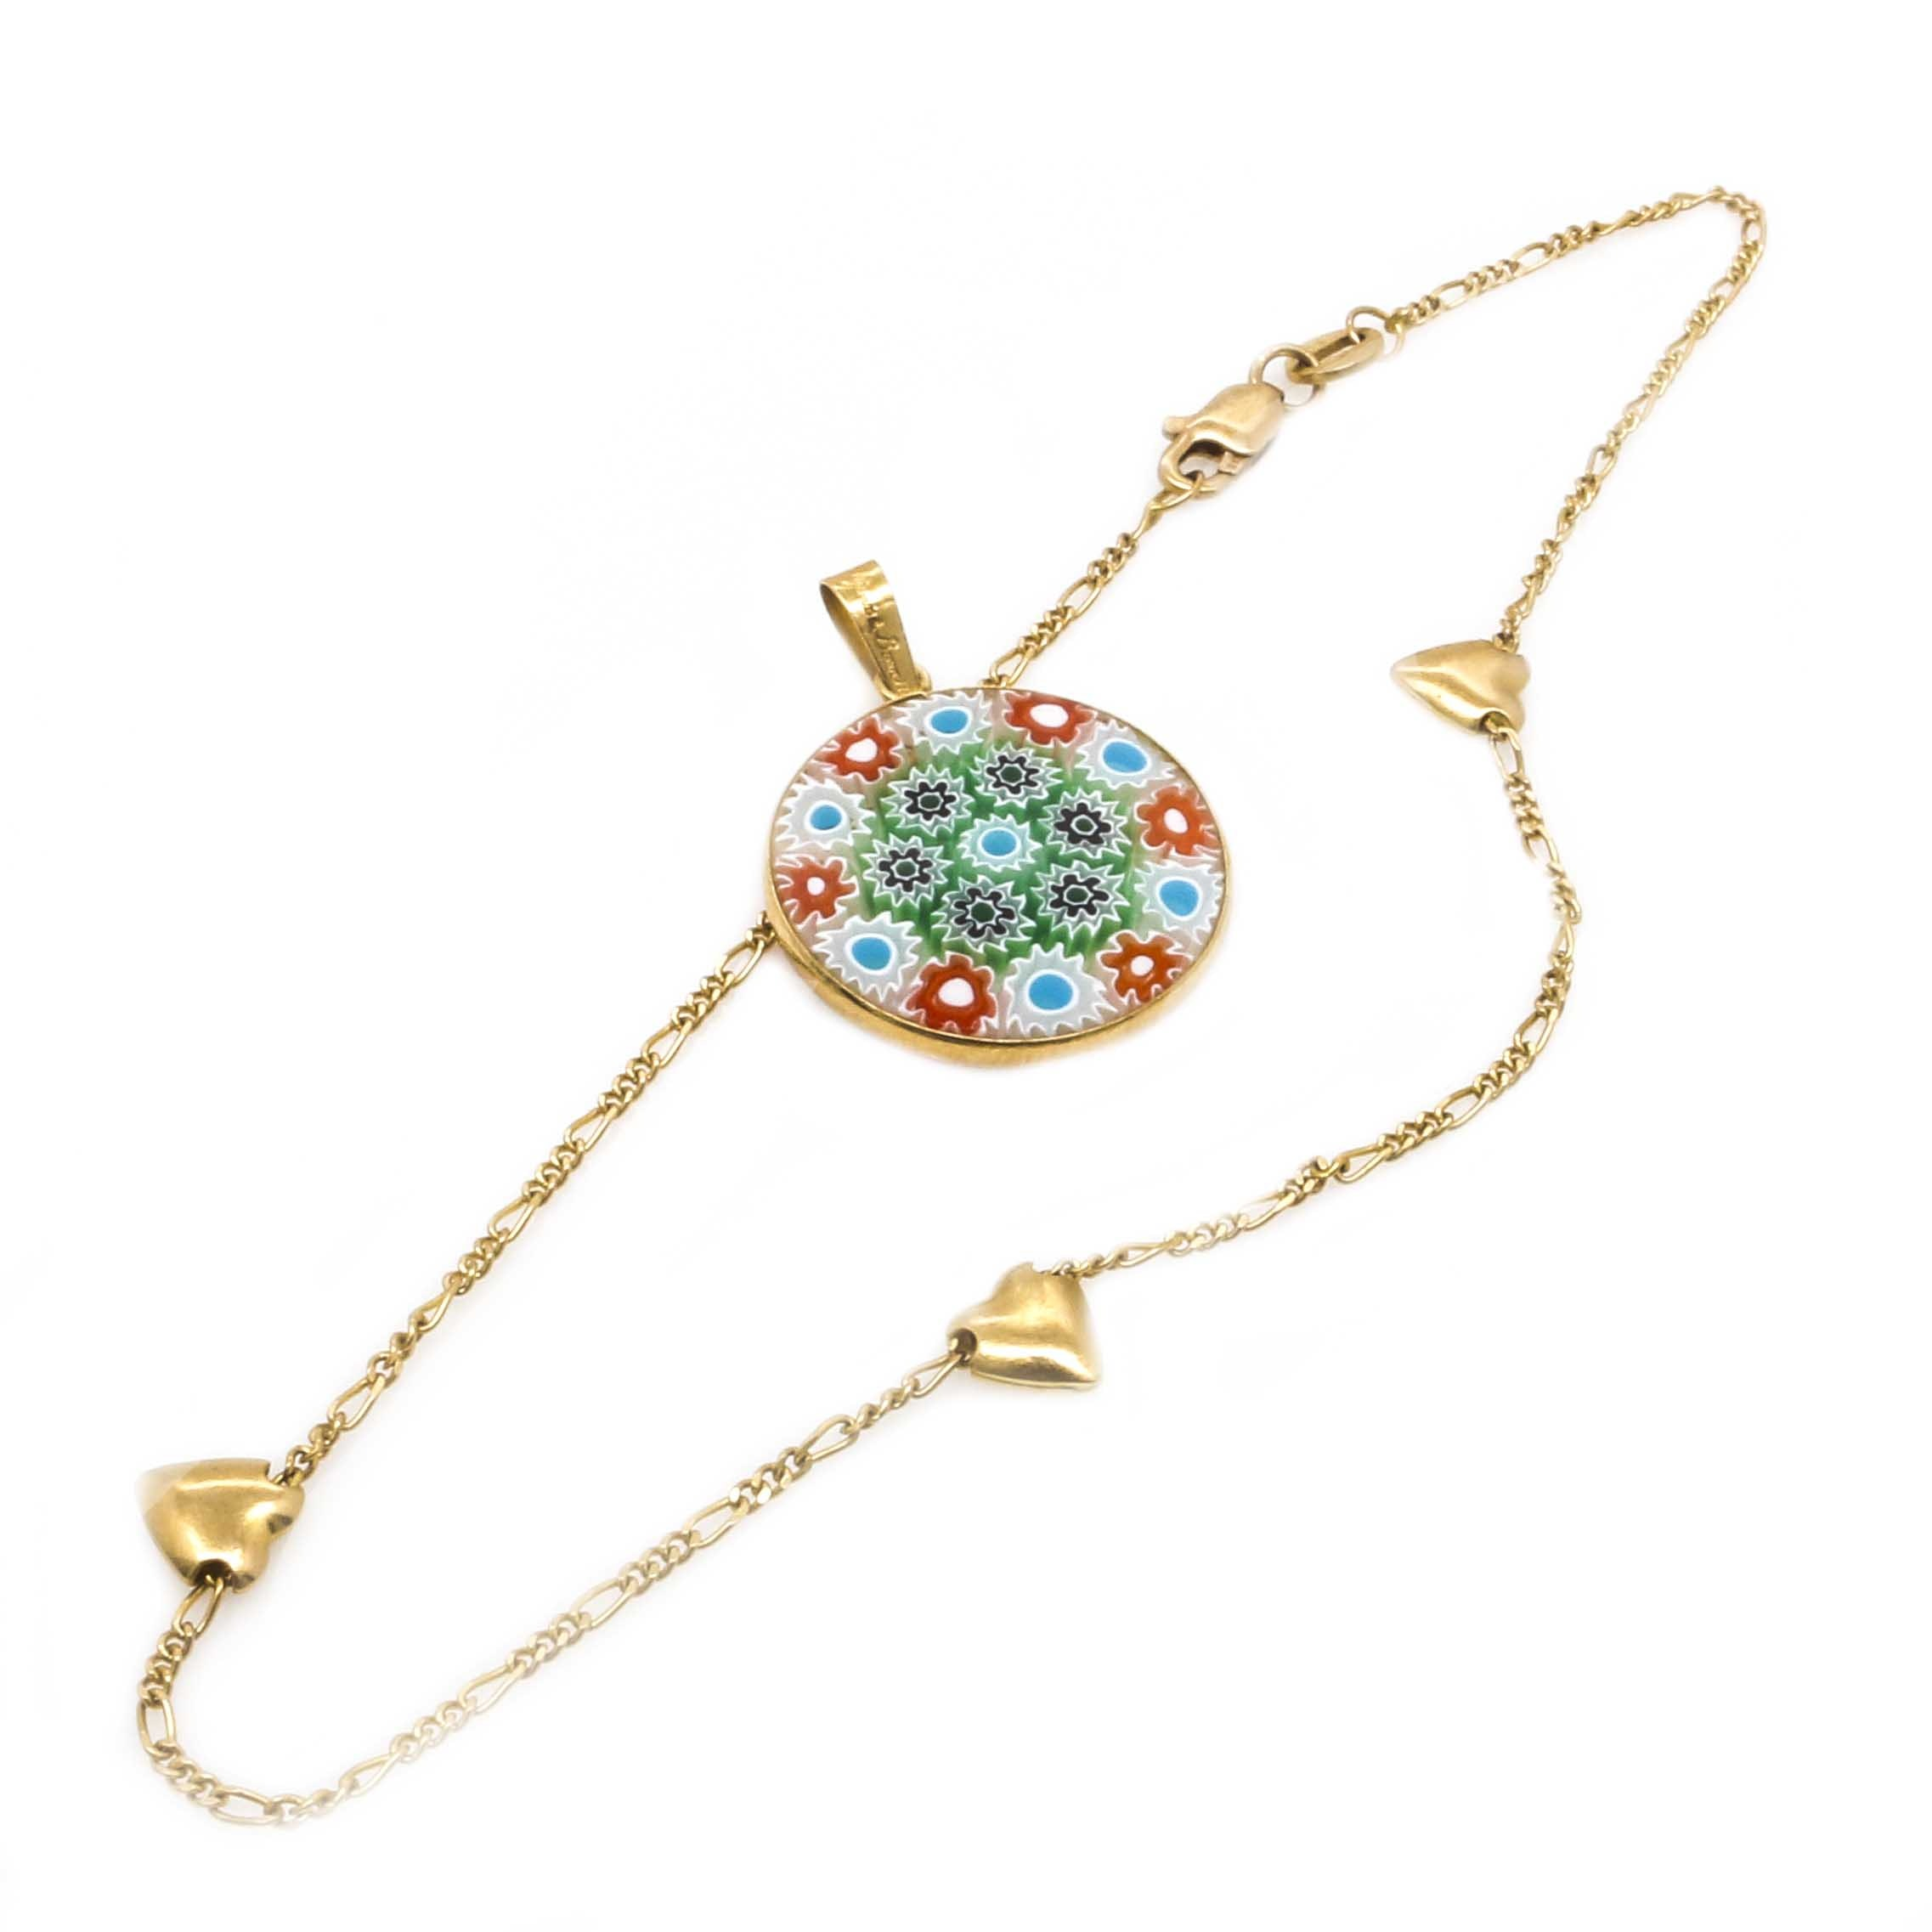 18K Yellow Gold Millefiori Glass Pendant and 14K Yellow Gold Heart Station Anklet